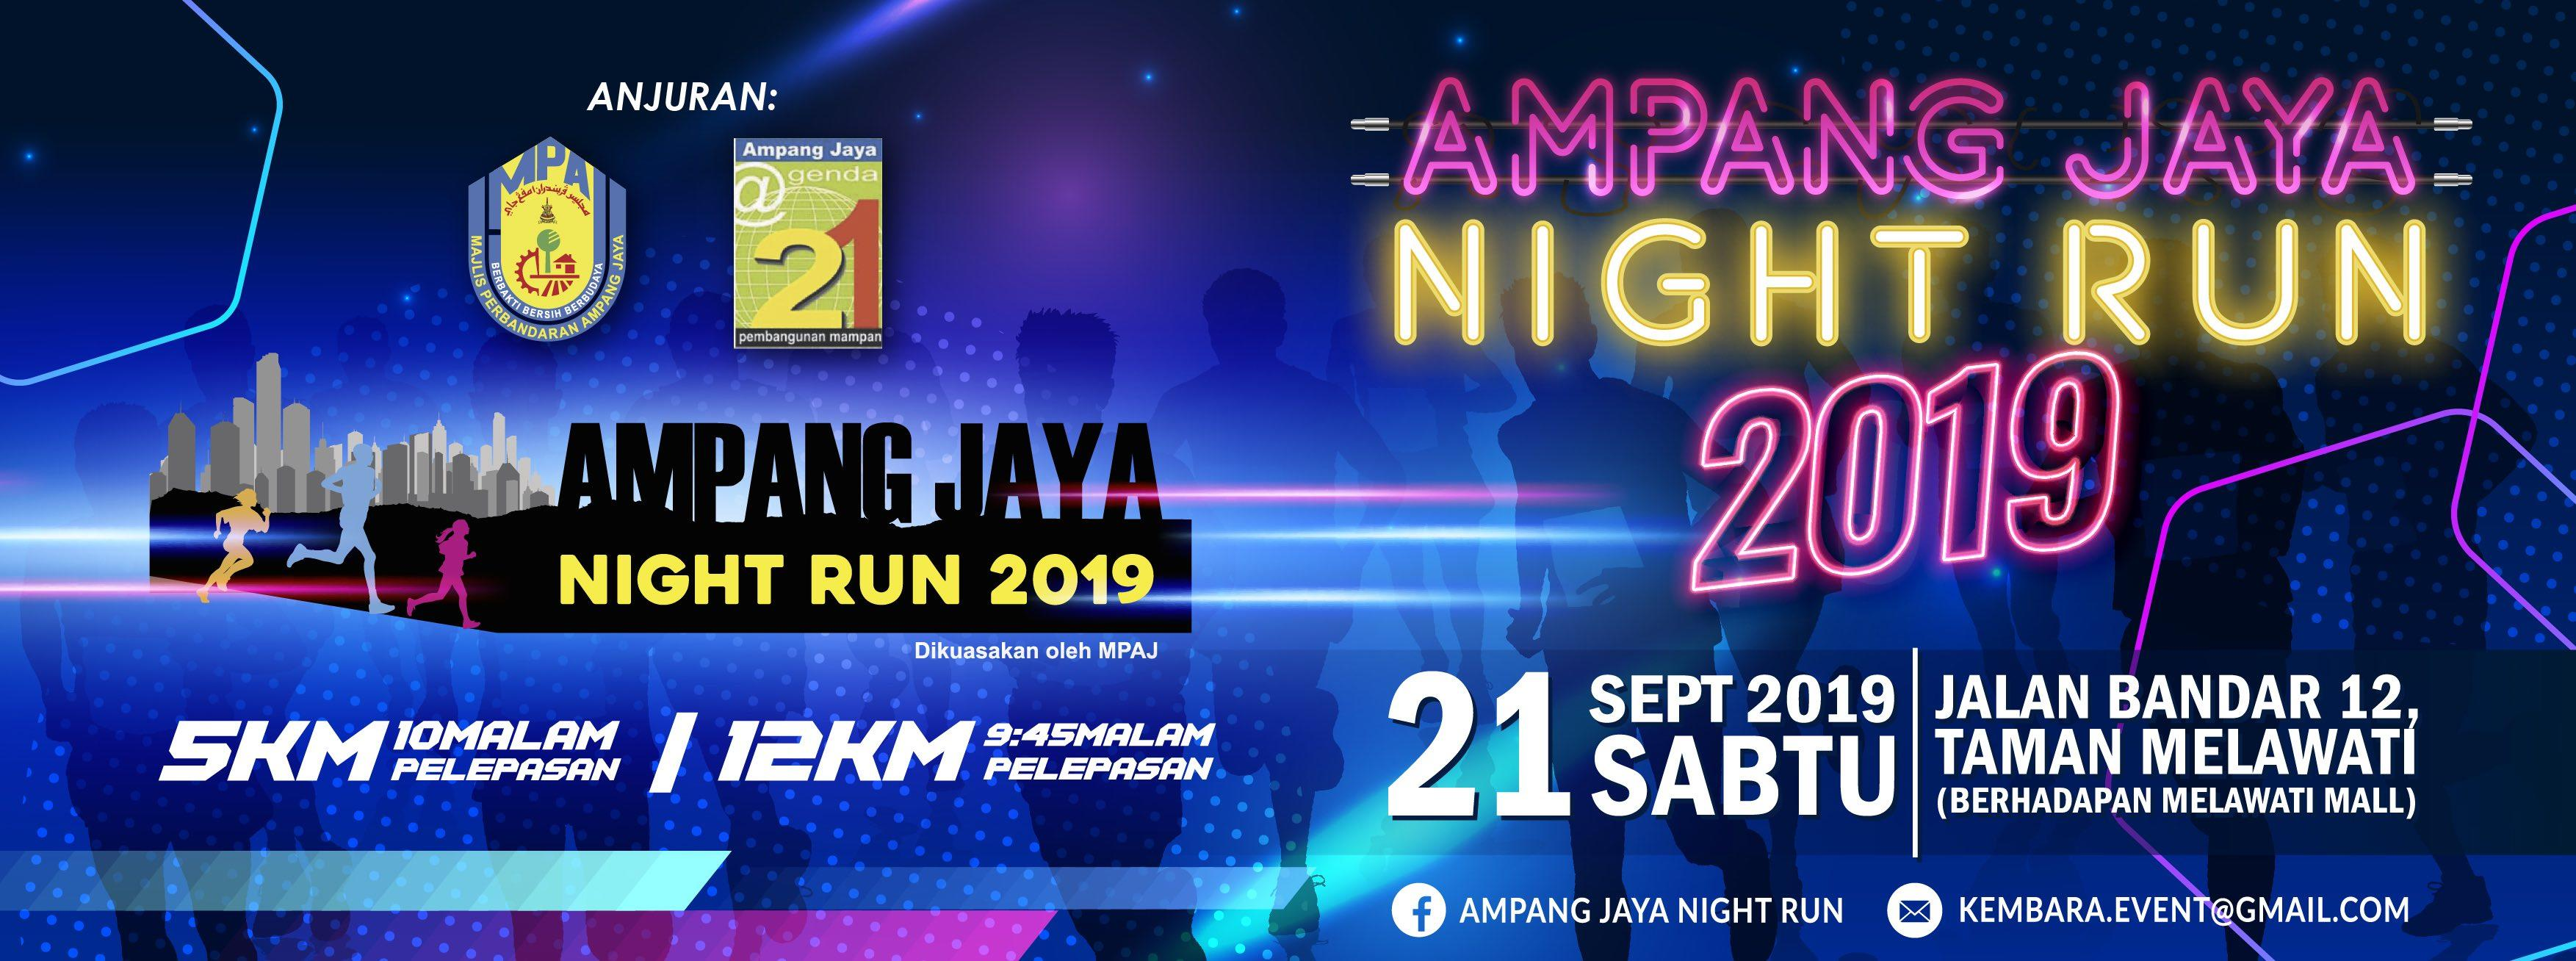 Ampang Jaya Night Run 2019